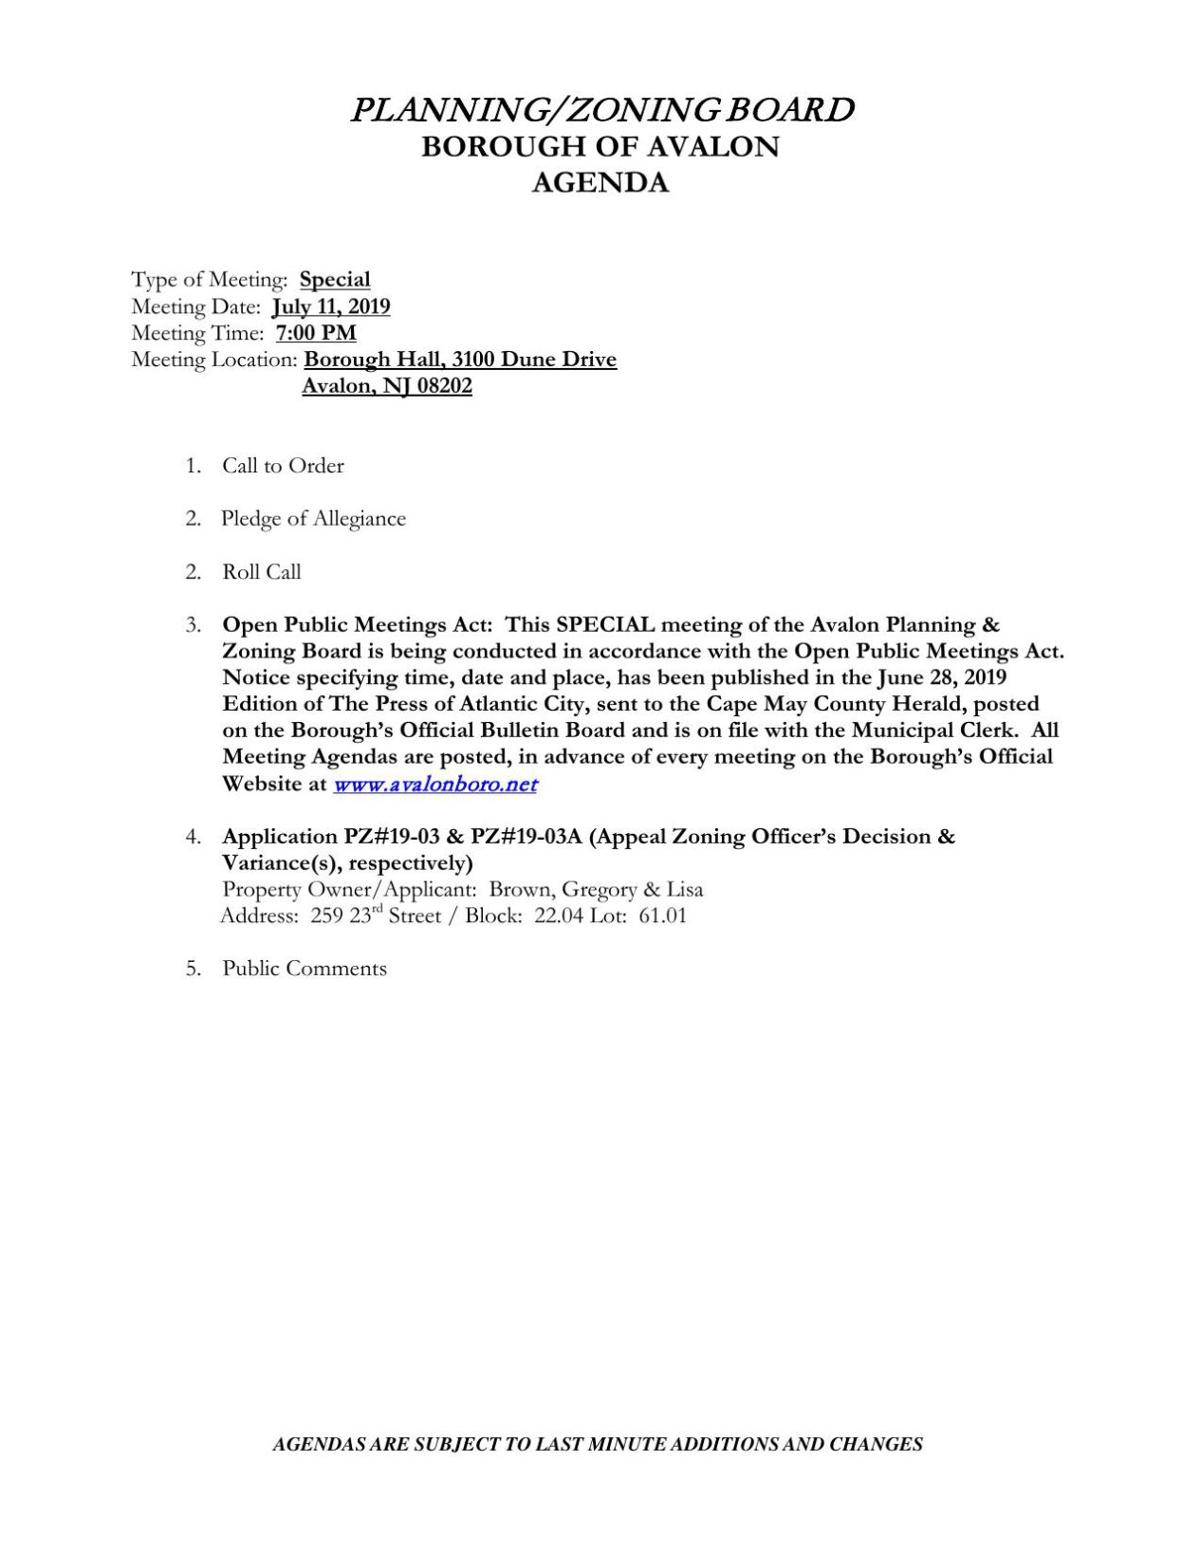 Avalon Planning-Zoning Board Special Meeting Agenda July 11, 2019